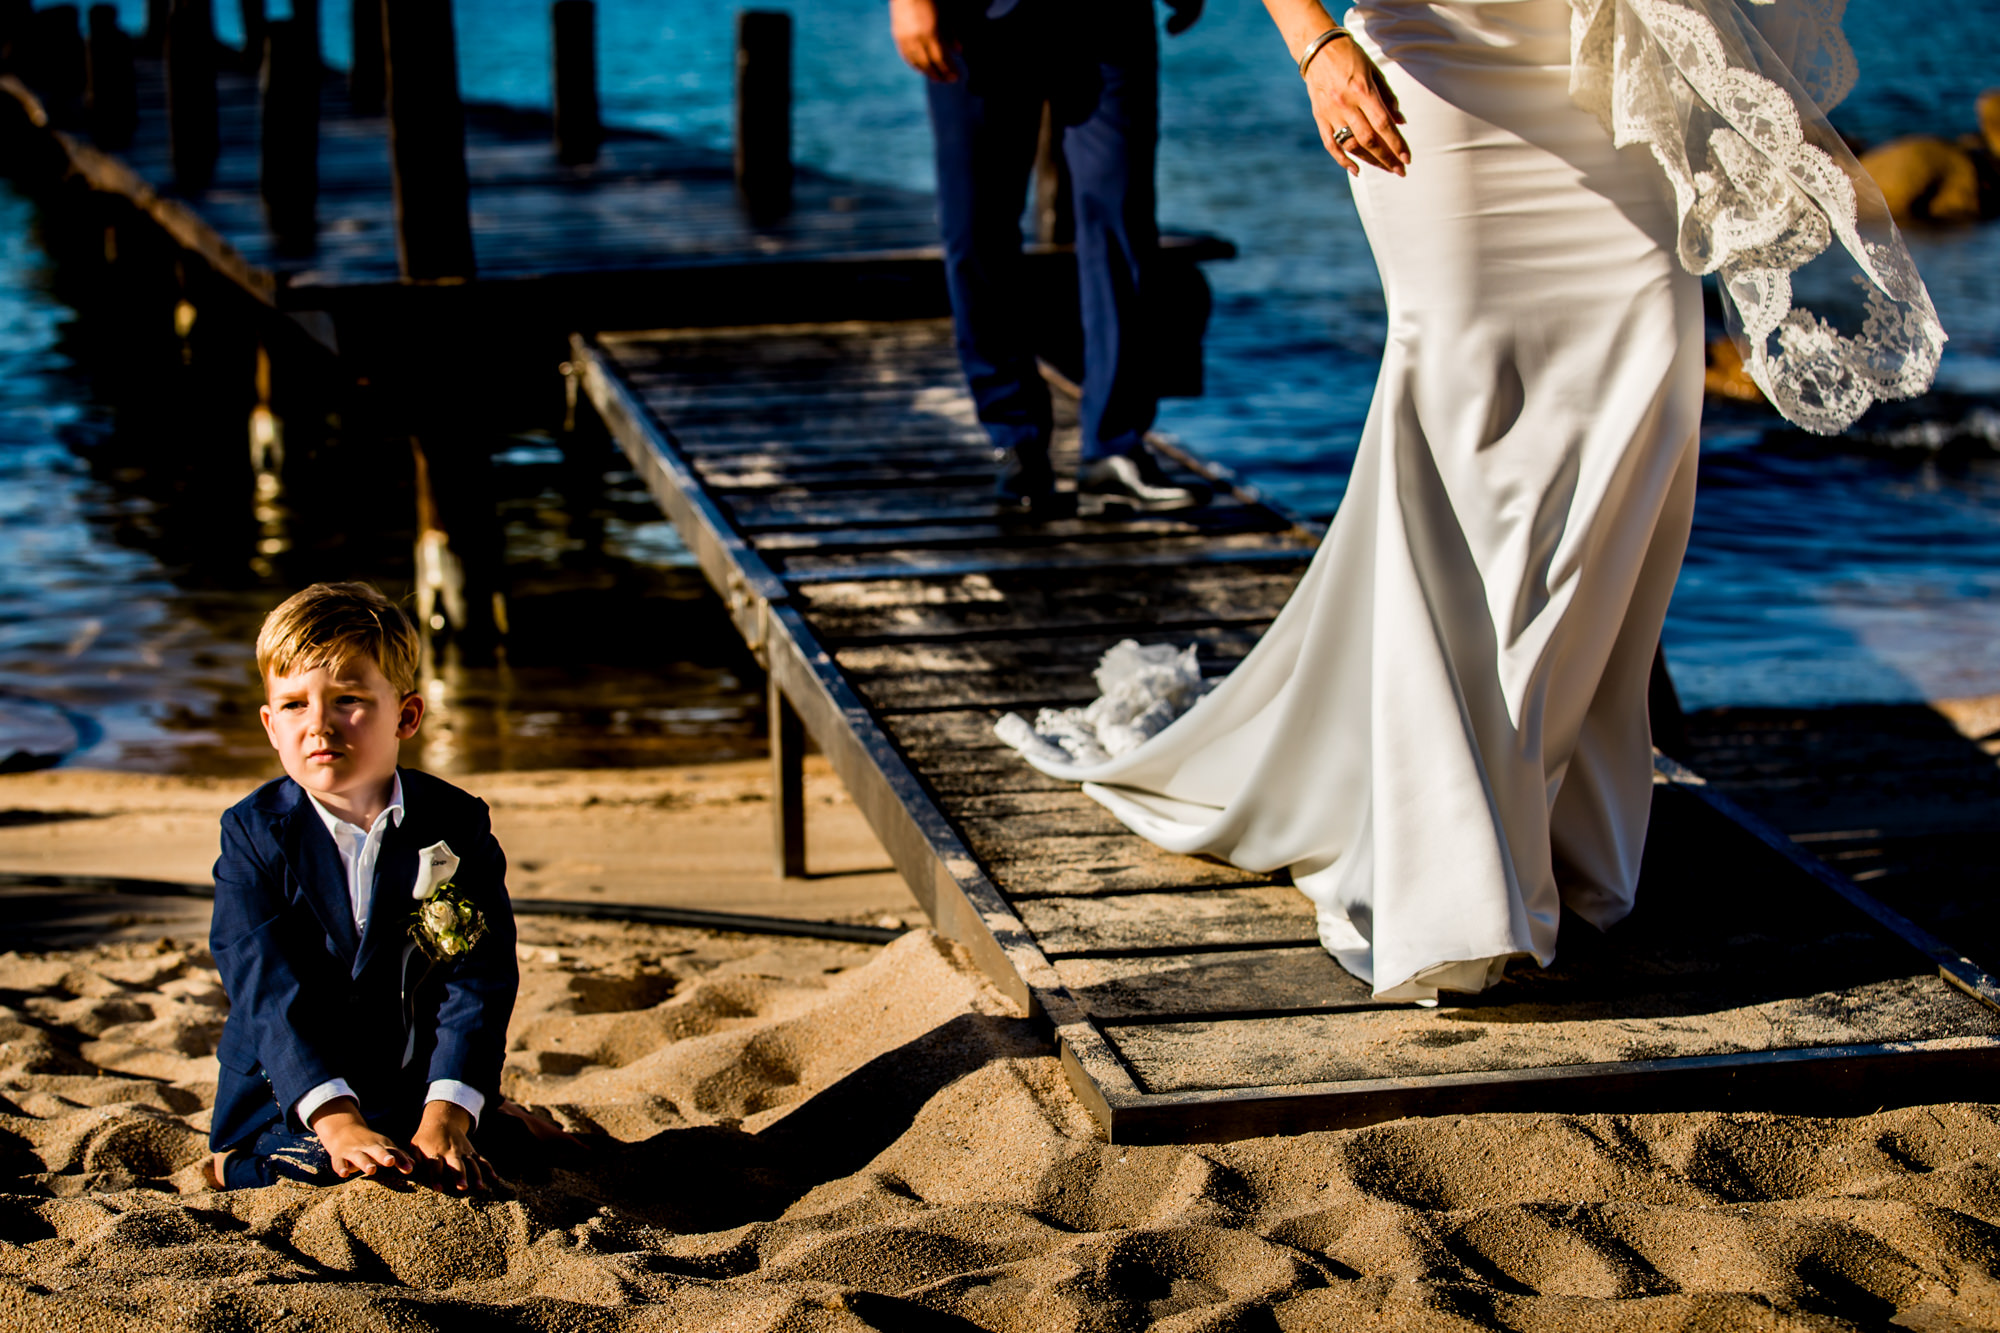 Ring bearer buries himself in the sand - photo by Eppel Photography